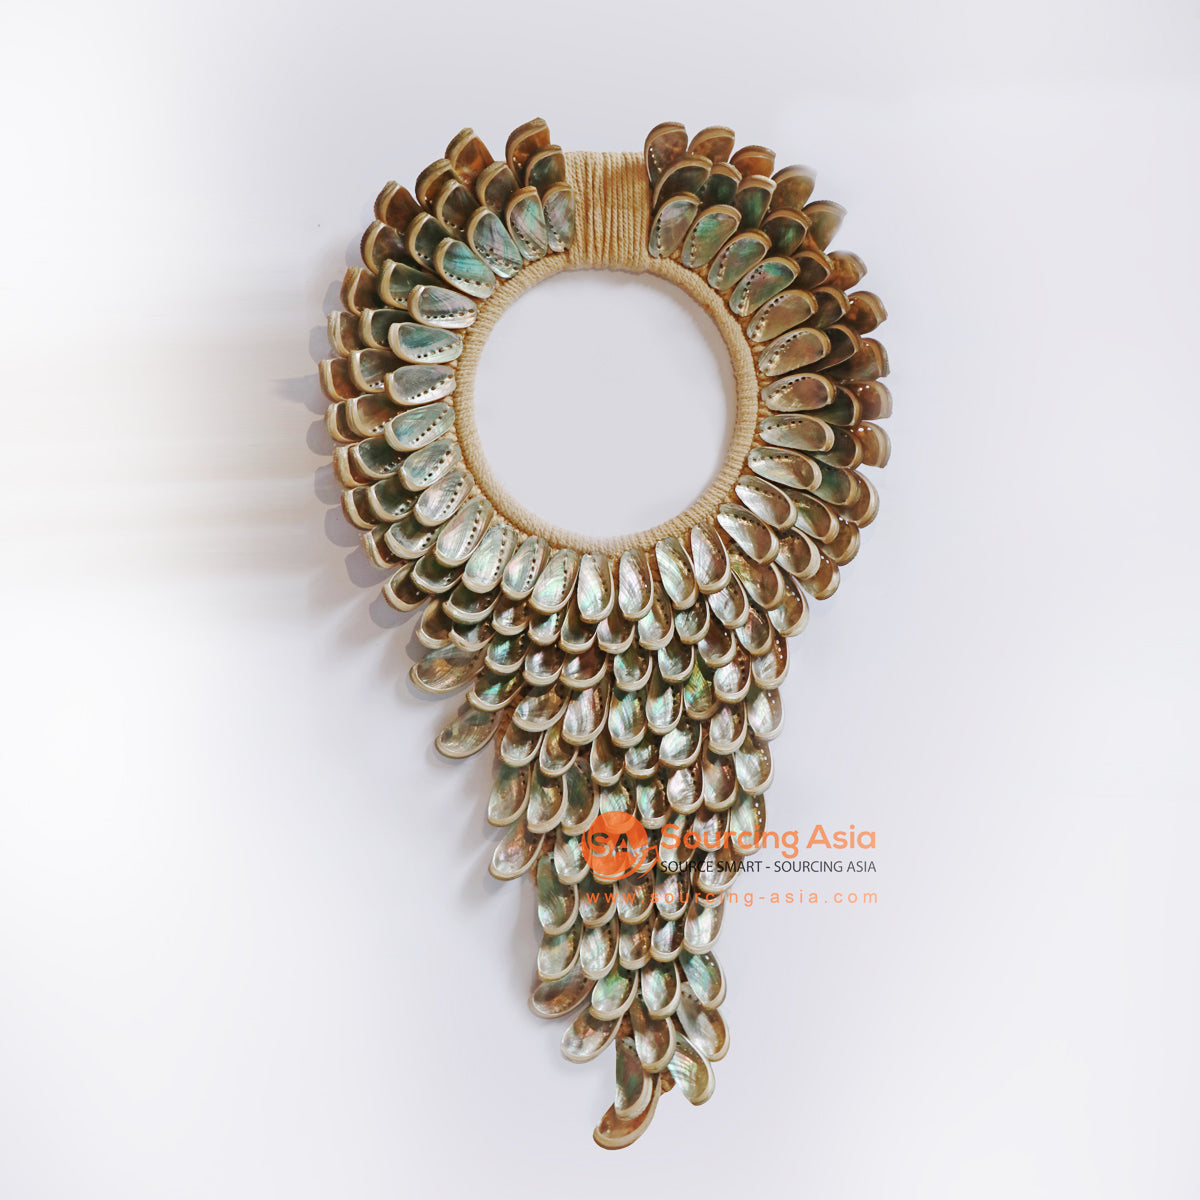 KNT089 TRIANGLE SHELL NECKLACE WALL DECORATION